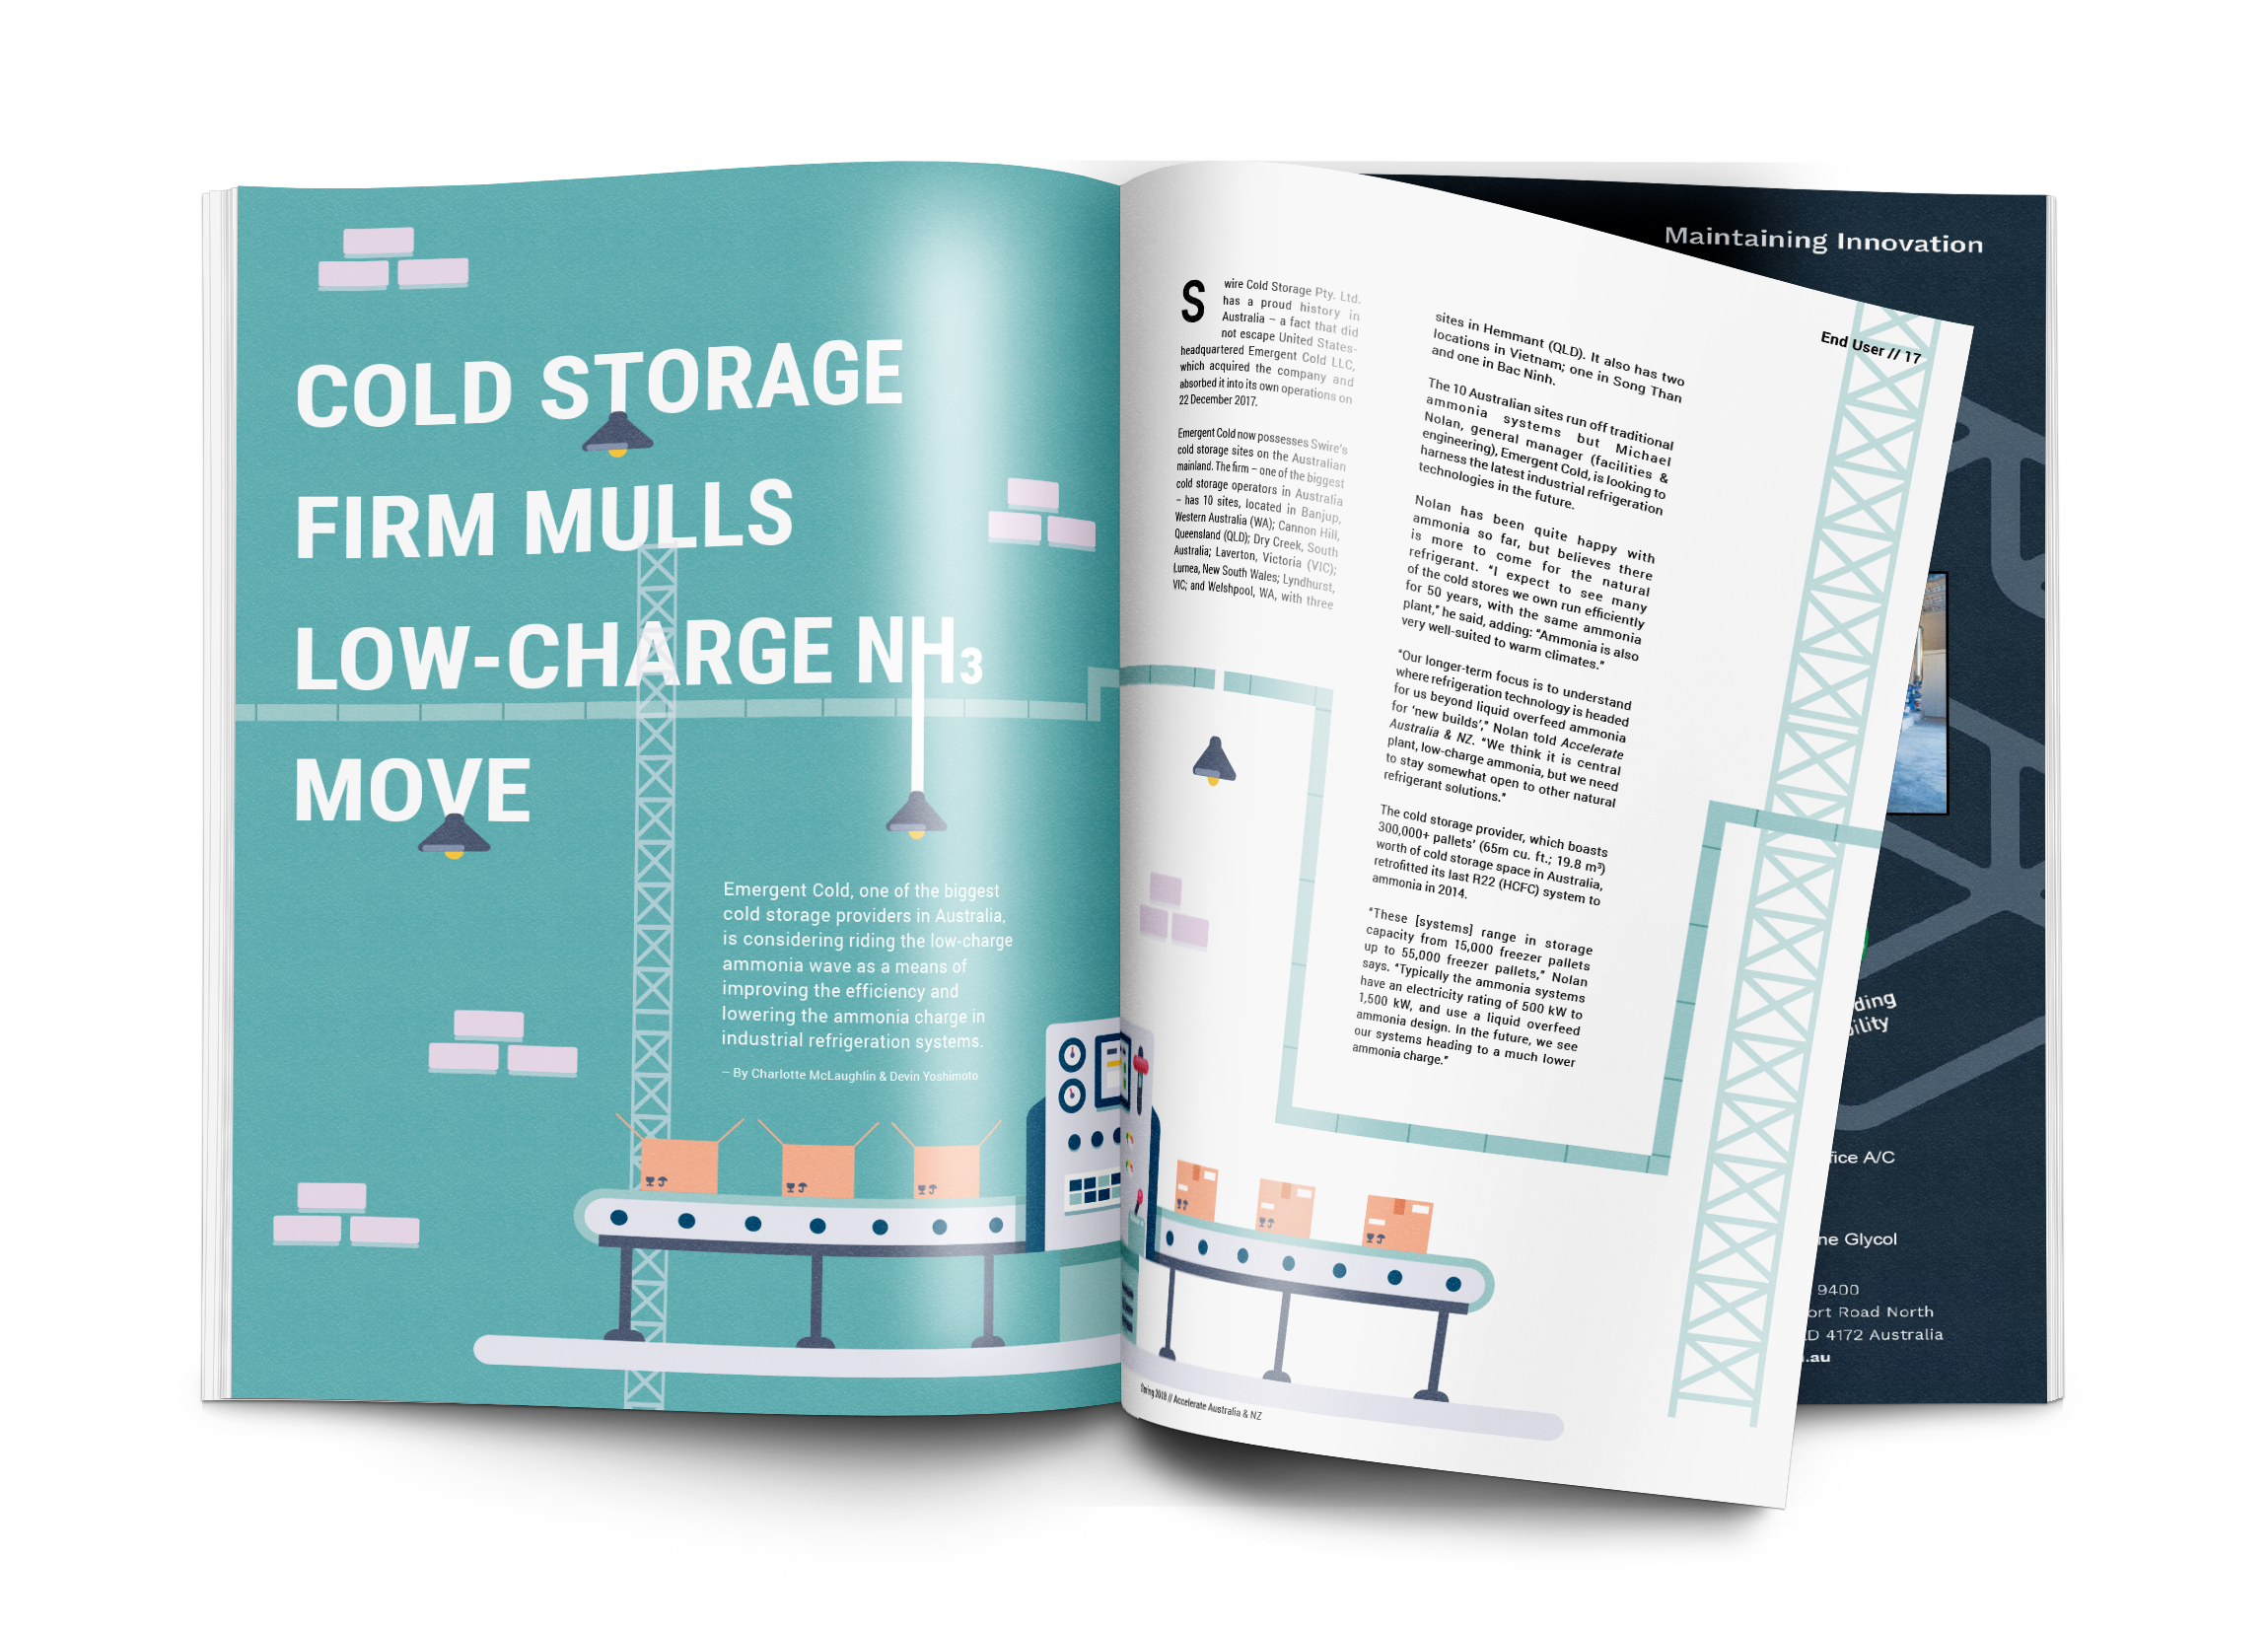 Cold storage firm mulls low-charge NH3 move